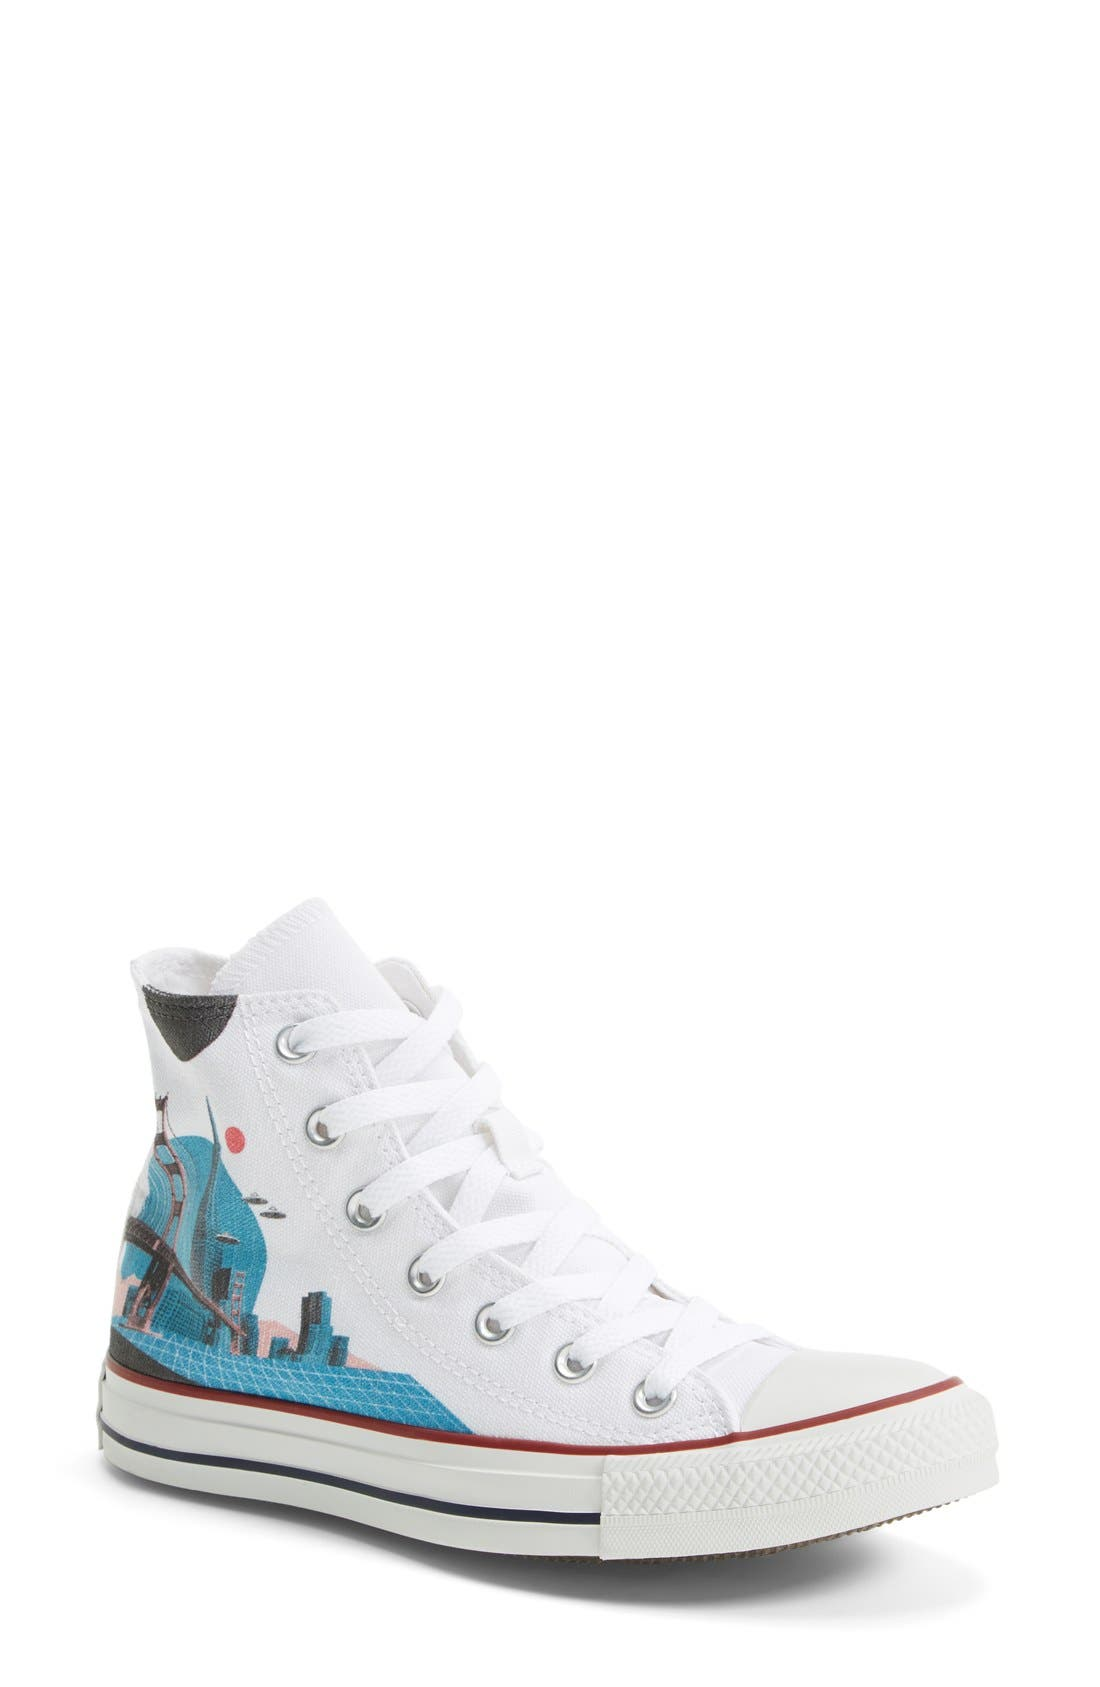 Main Image - Converse Chuck Taylor® All Star® 'Made By You - San Francisco' High Top Sneaker (Women)